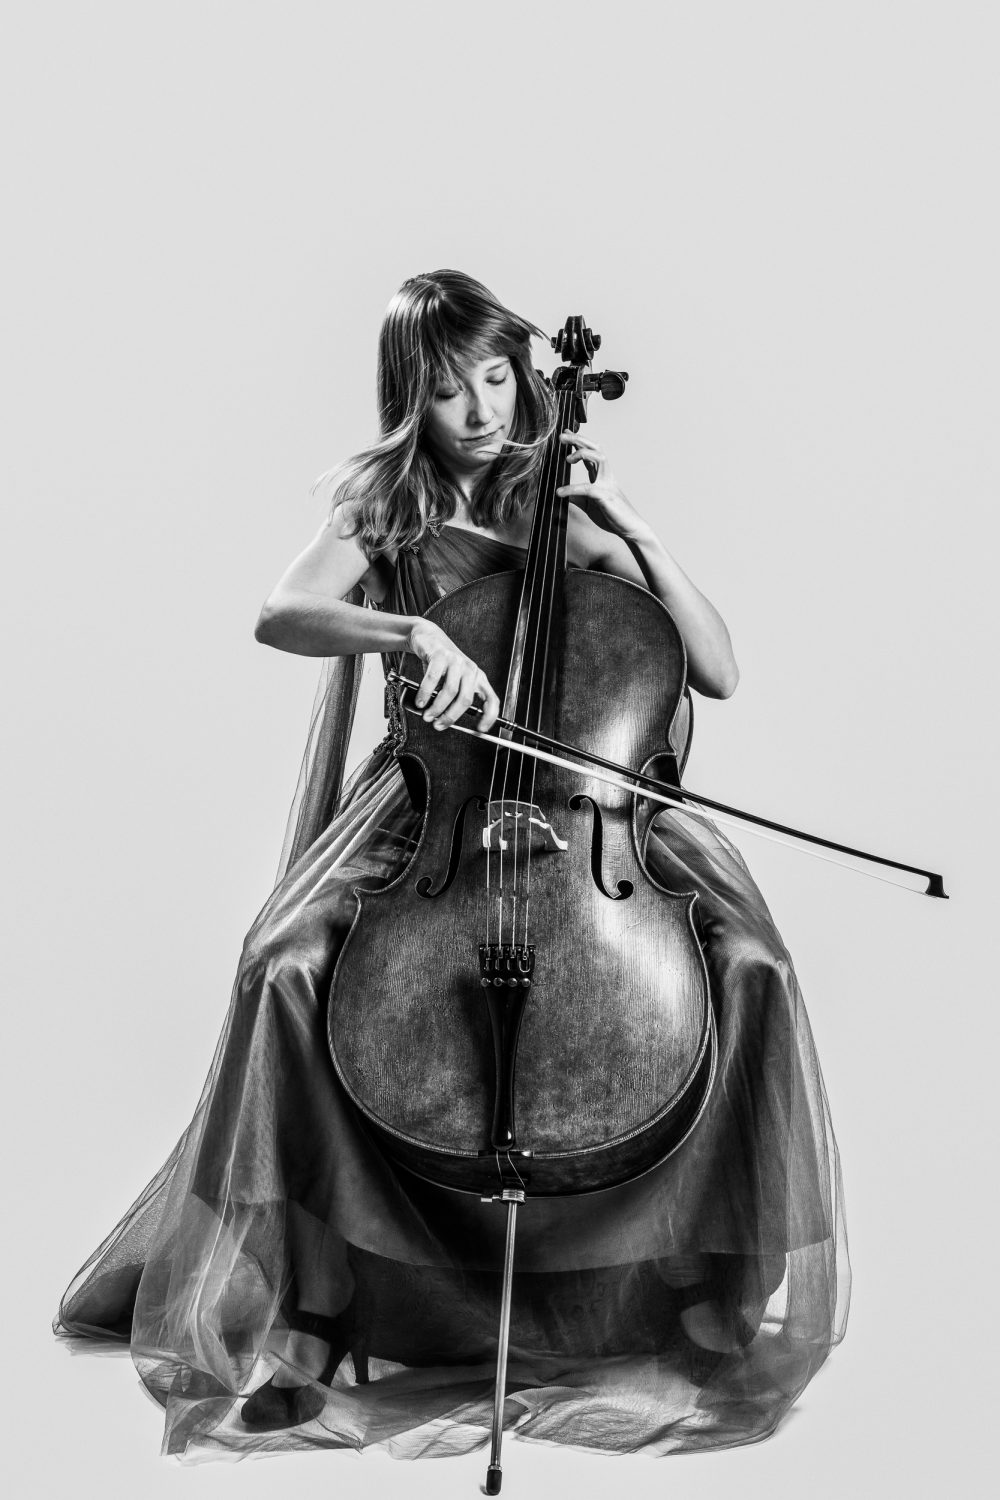 Isabel Gehweiler playing her cello, black and white picture